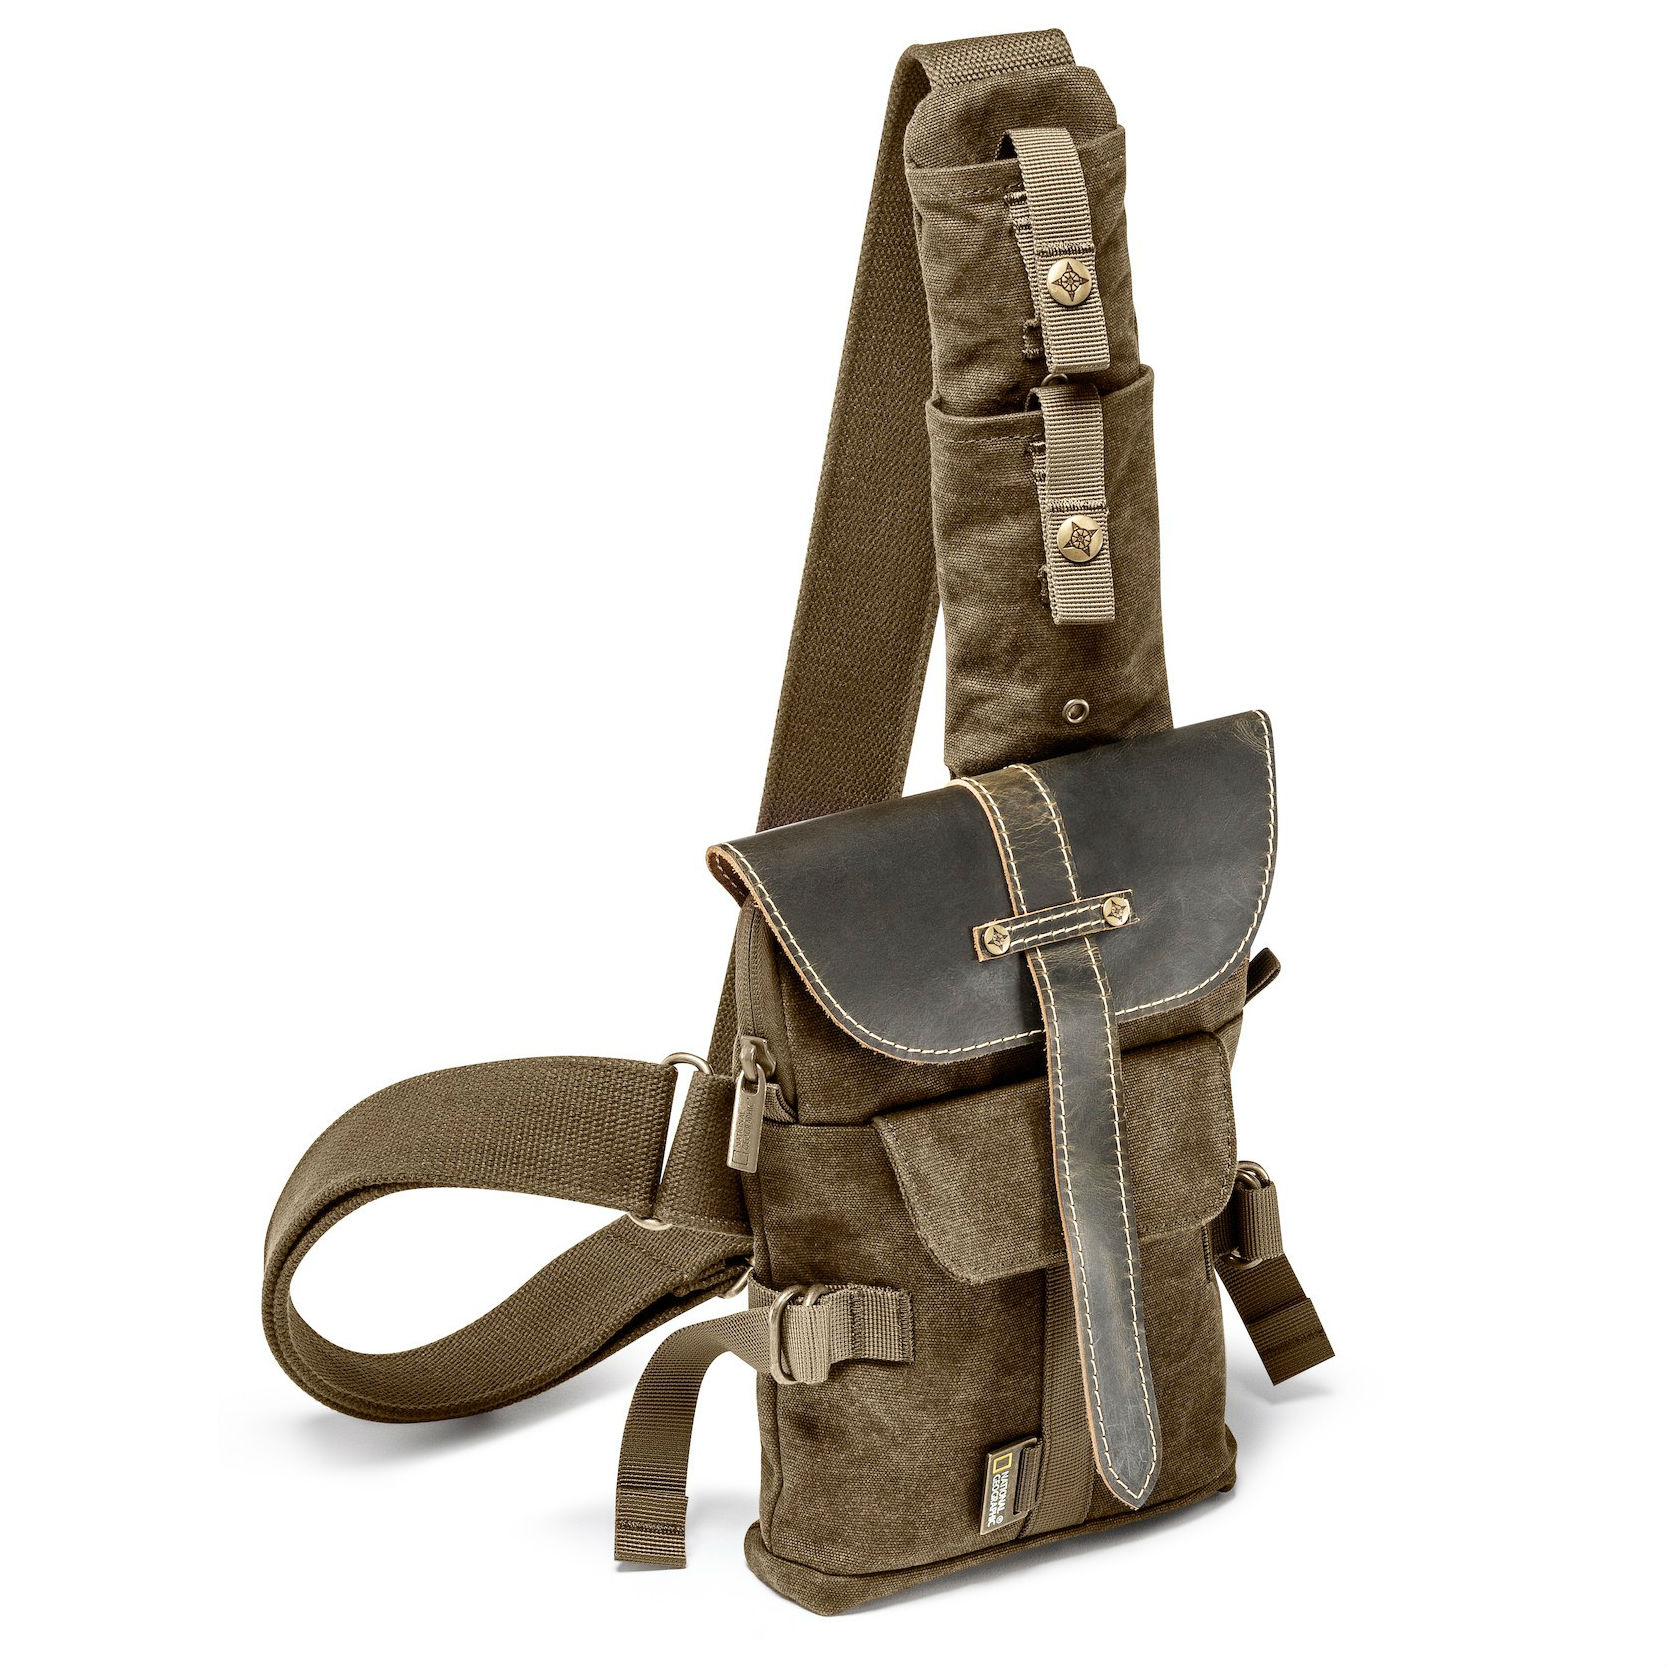 Image of National Geographic Africa Small sling bag - NG A4567